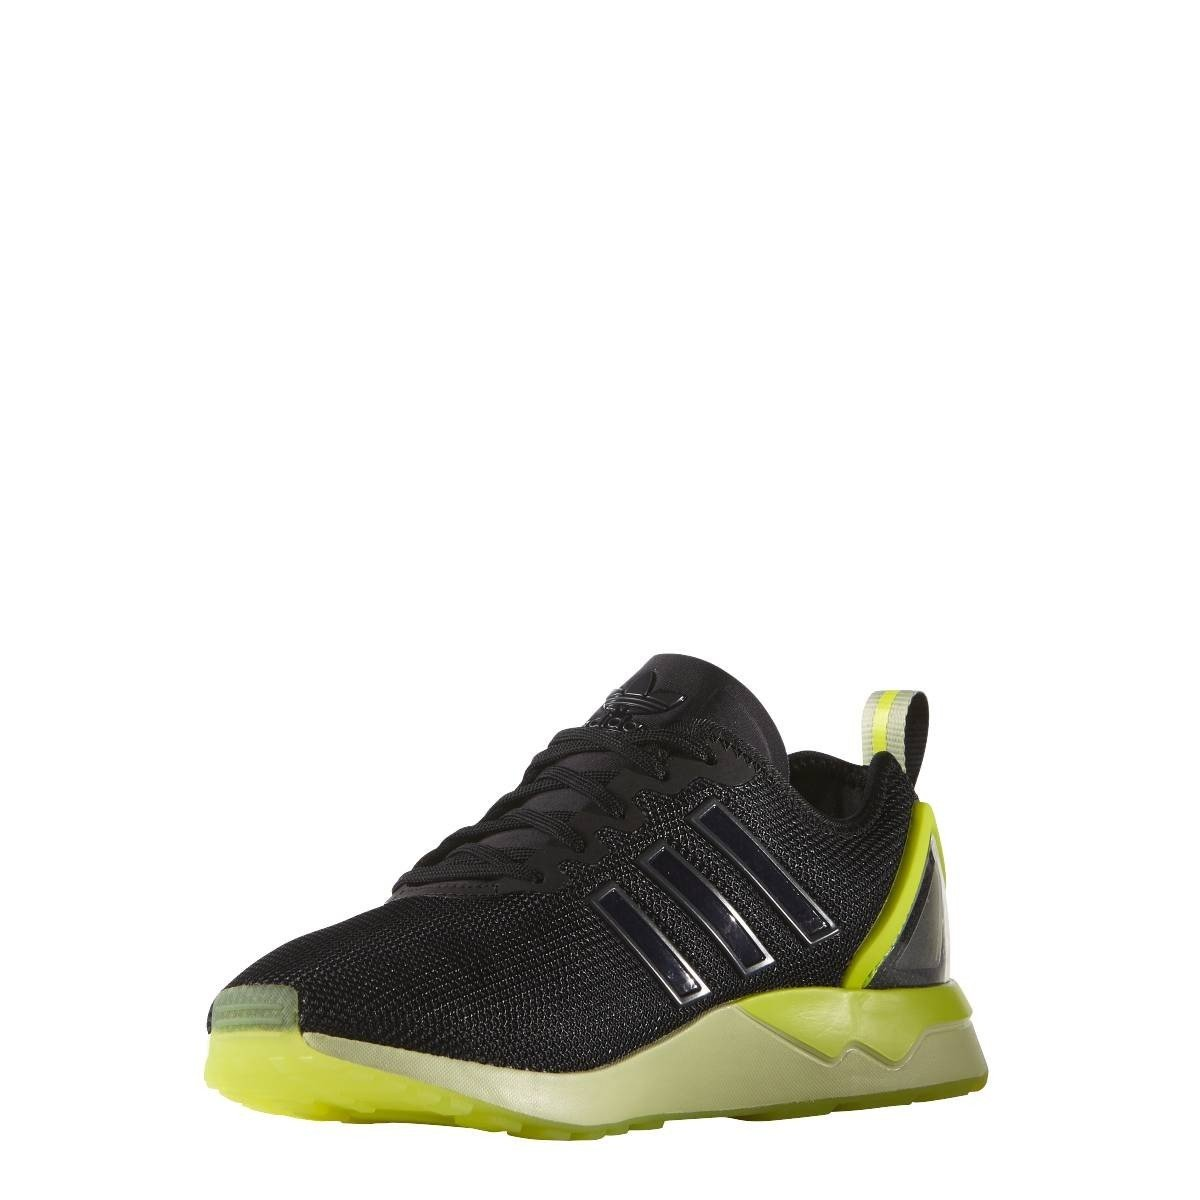 ADIDAS ORIGINALS Zx Flux ADV  | Sale Online